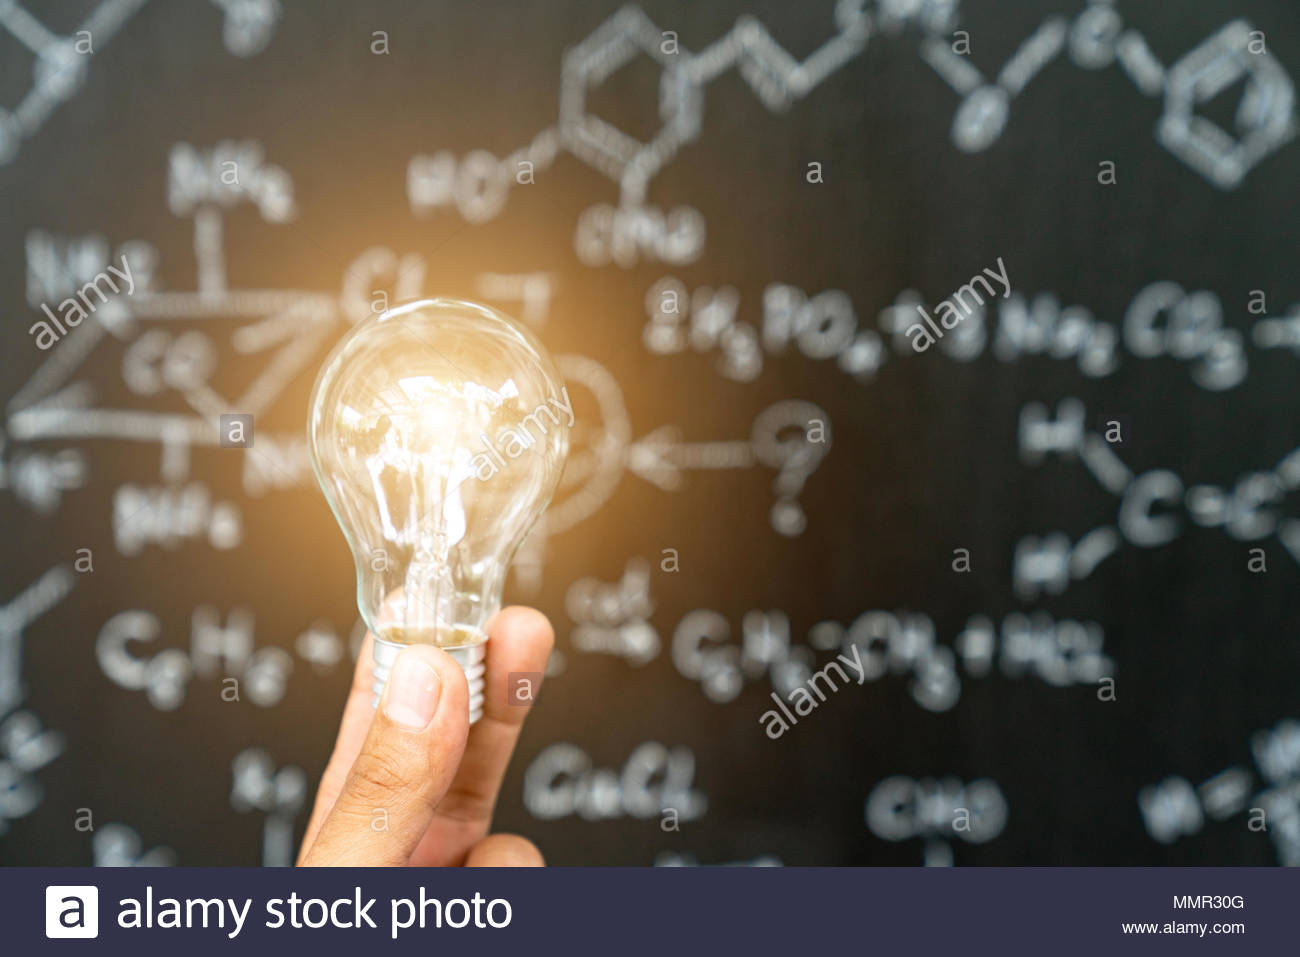 Light bulb glowing learning from mistake - Stock Image